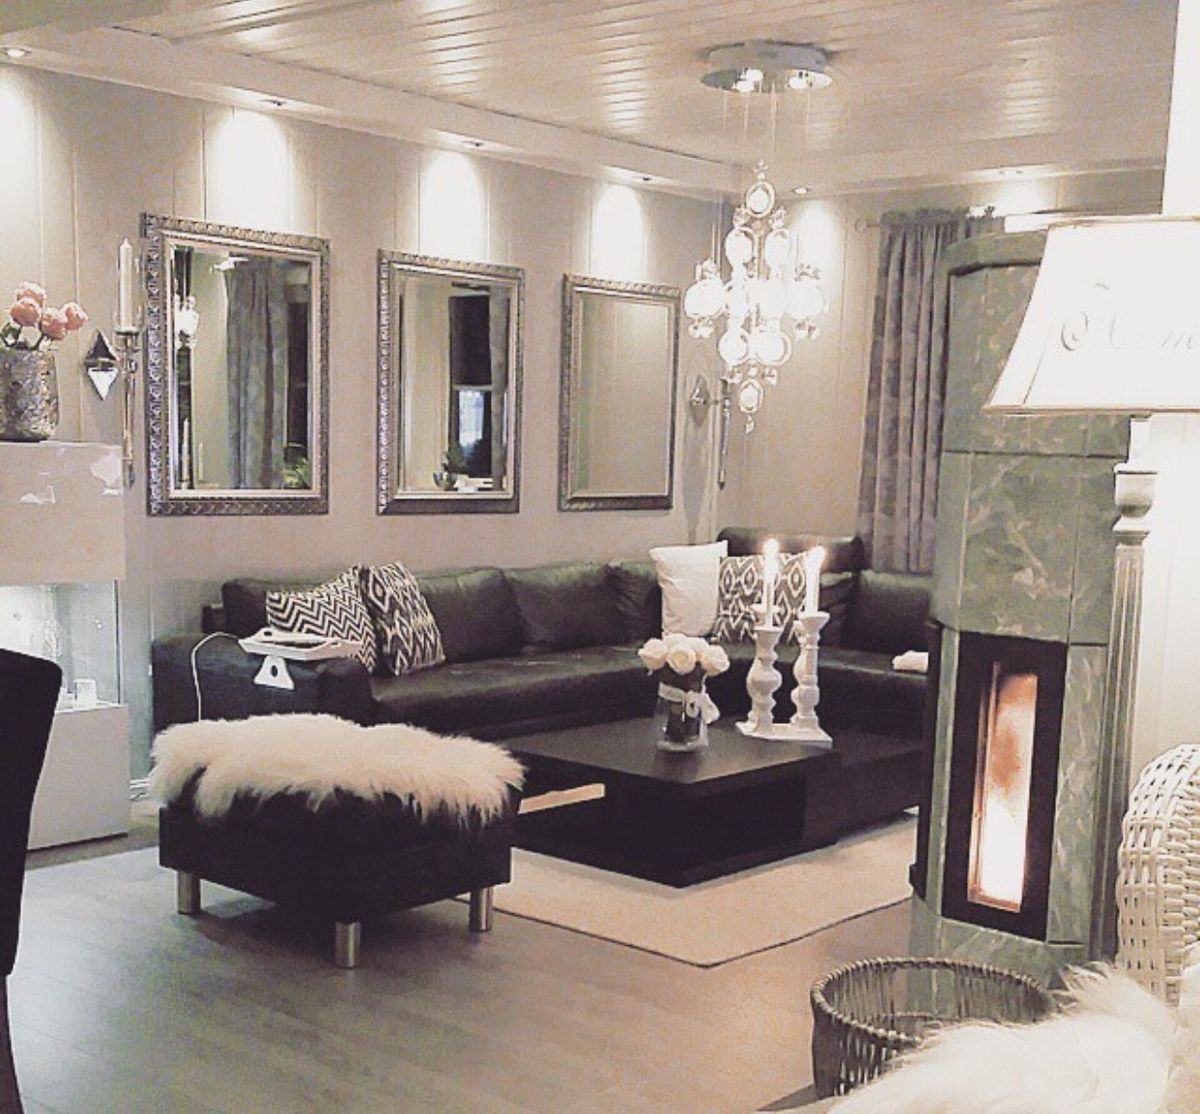 Pindrea🌸 On Home Interiors & Decorating Ideas  Pinterest New How To Decorate A Living Room Design Decoration